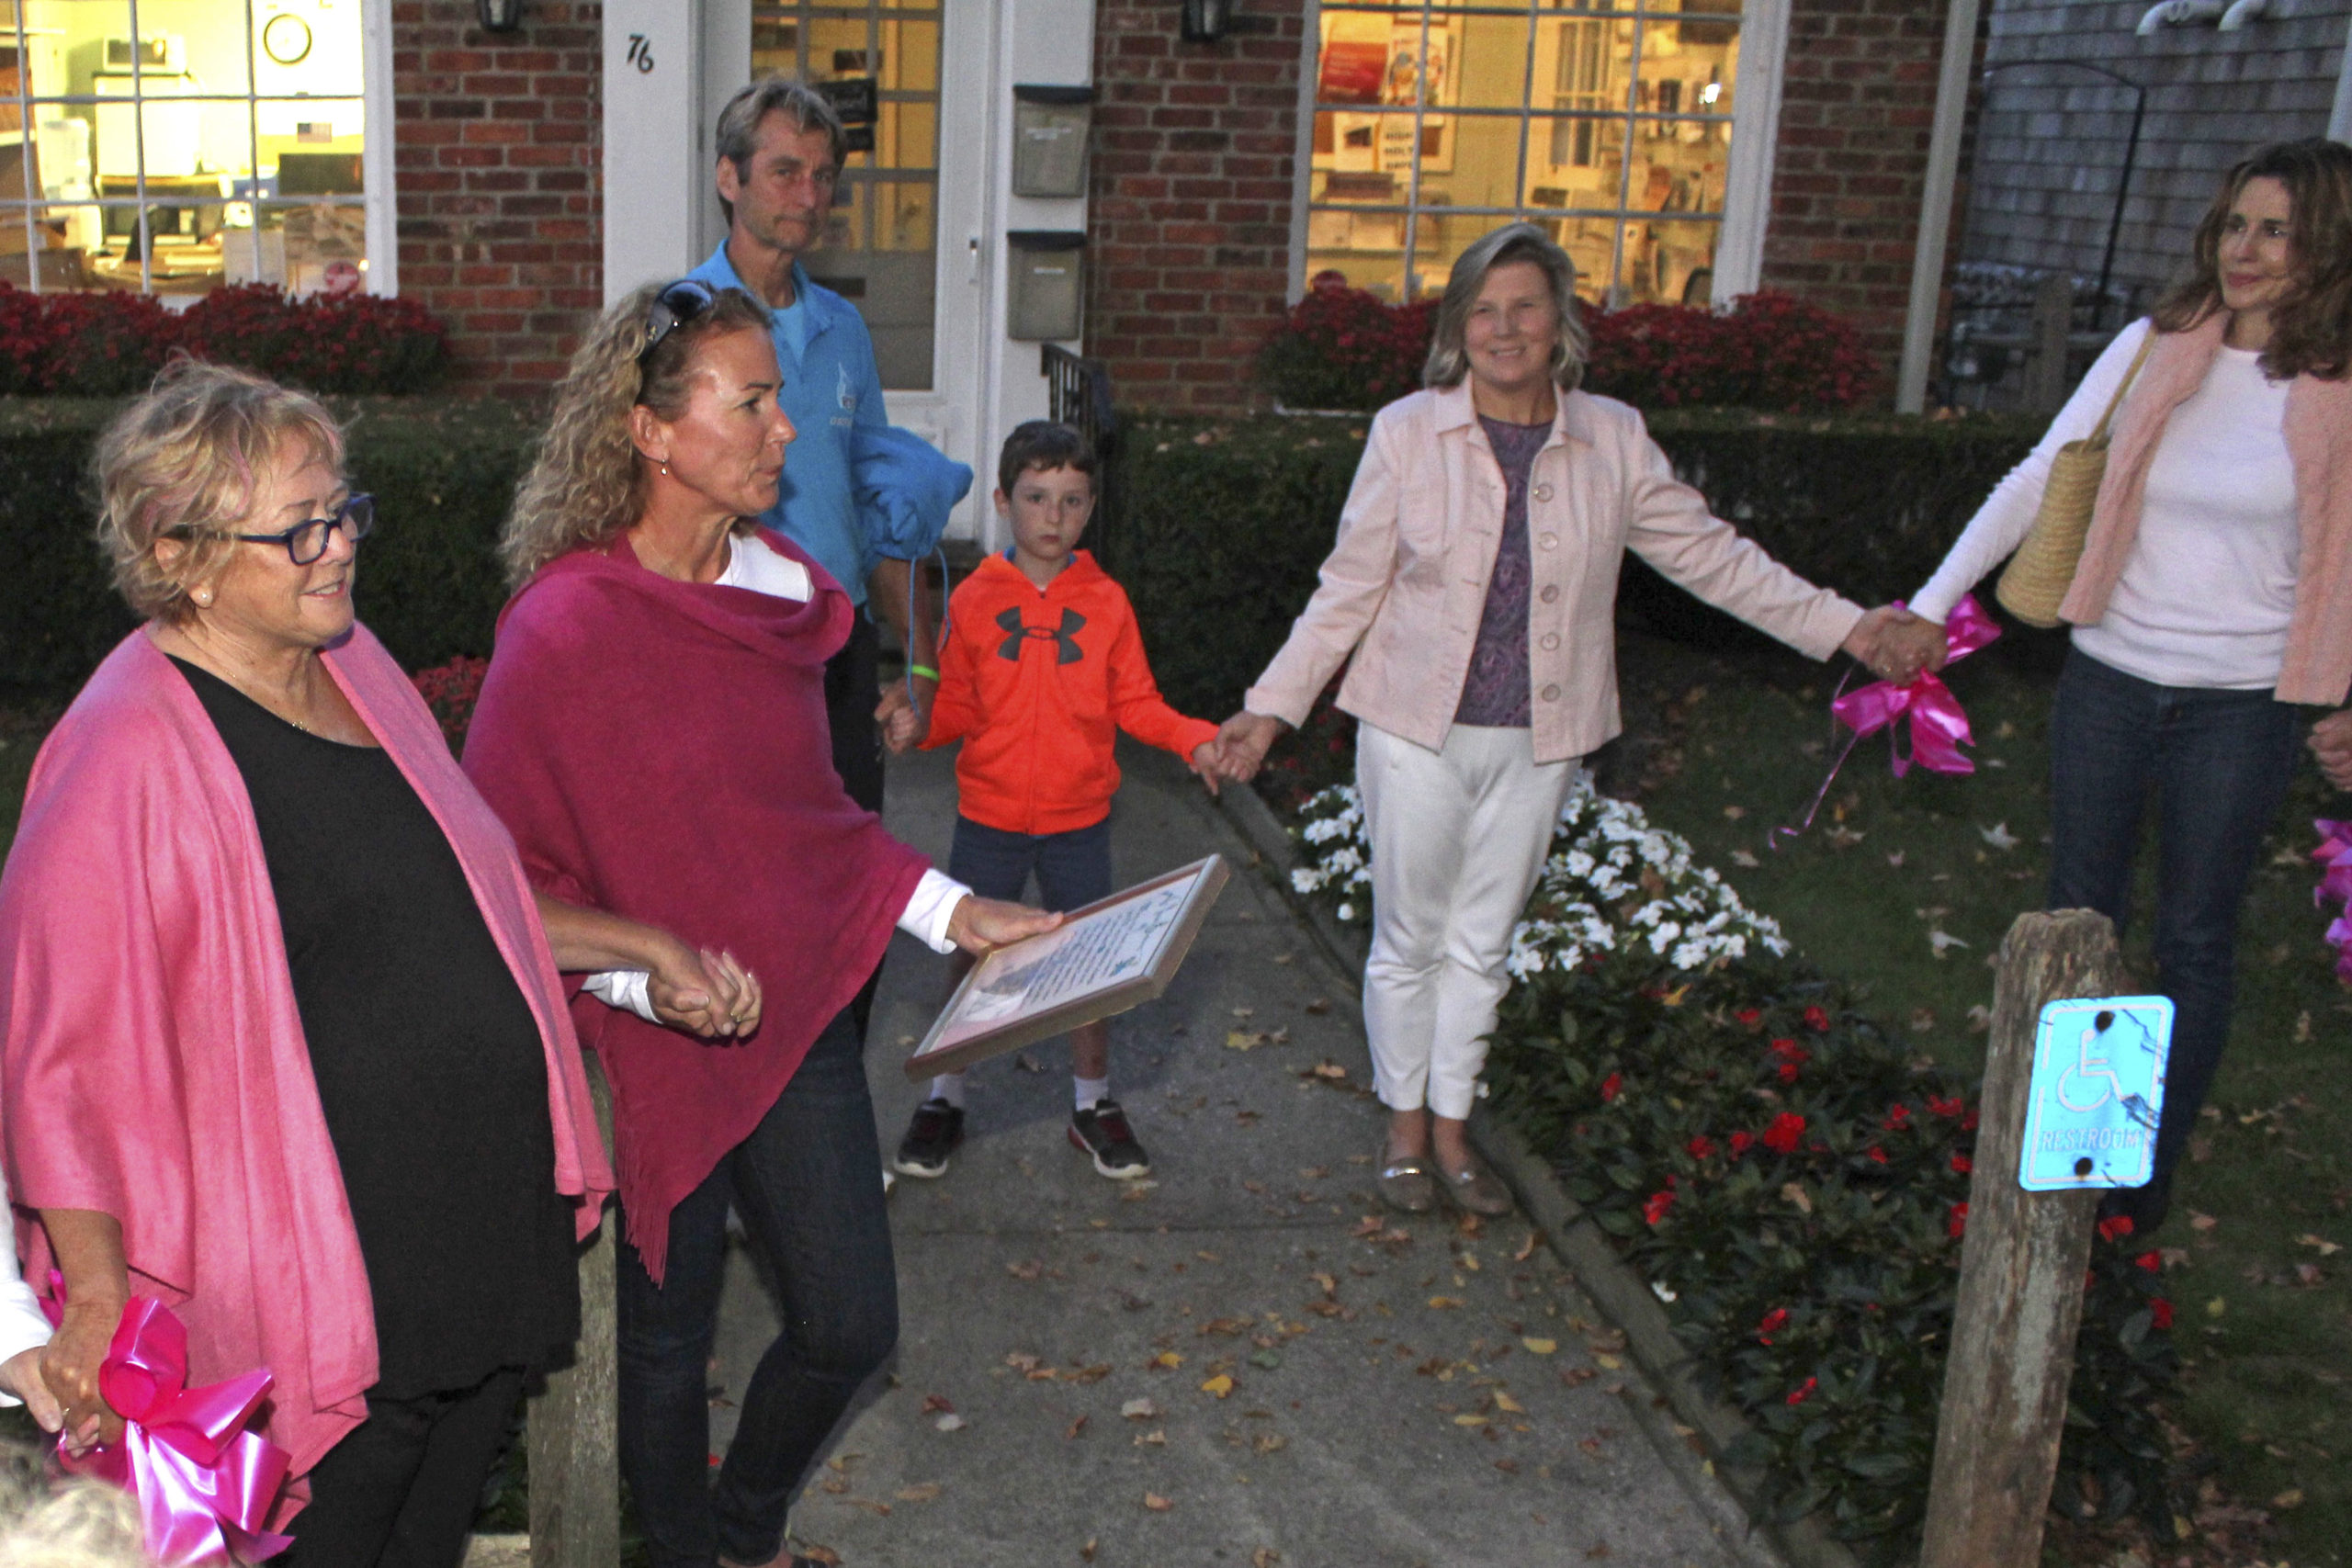 Susie Roden, far left, at the lighting of the pink tree for Breast Cancer Awareness Month in October of 2019.